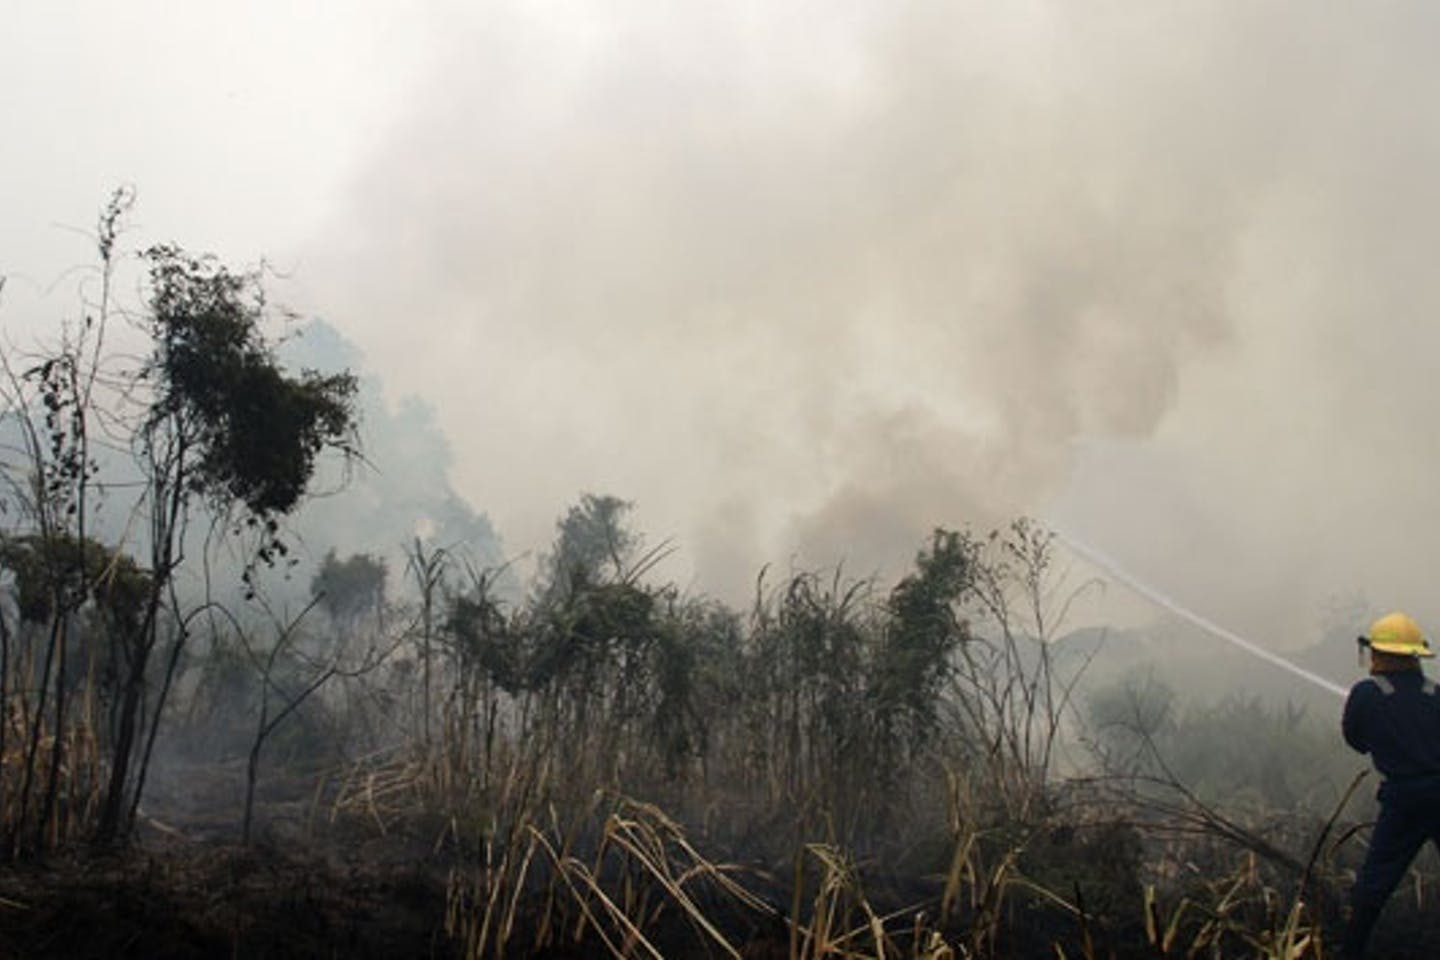 Forest fire in Pekanbaru, Riau, Indonesia